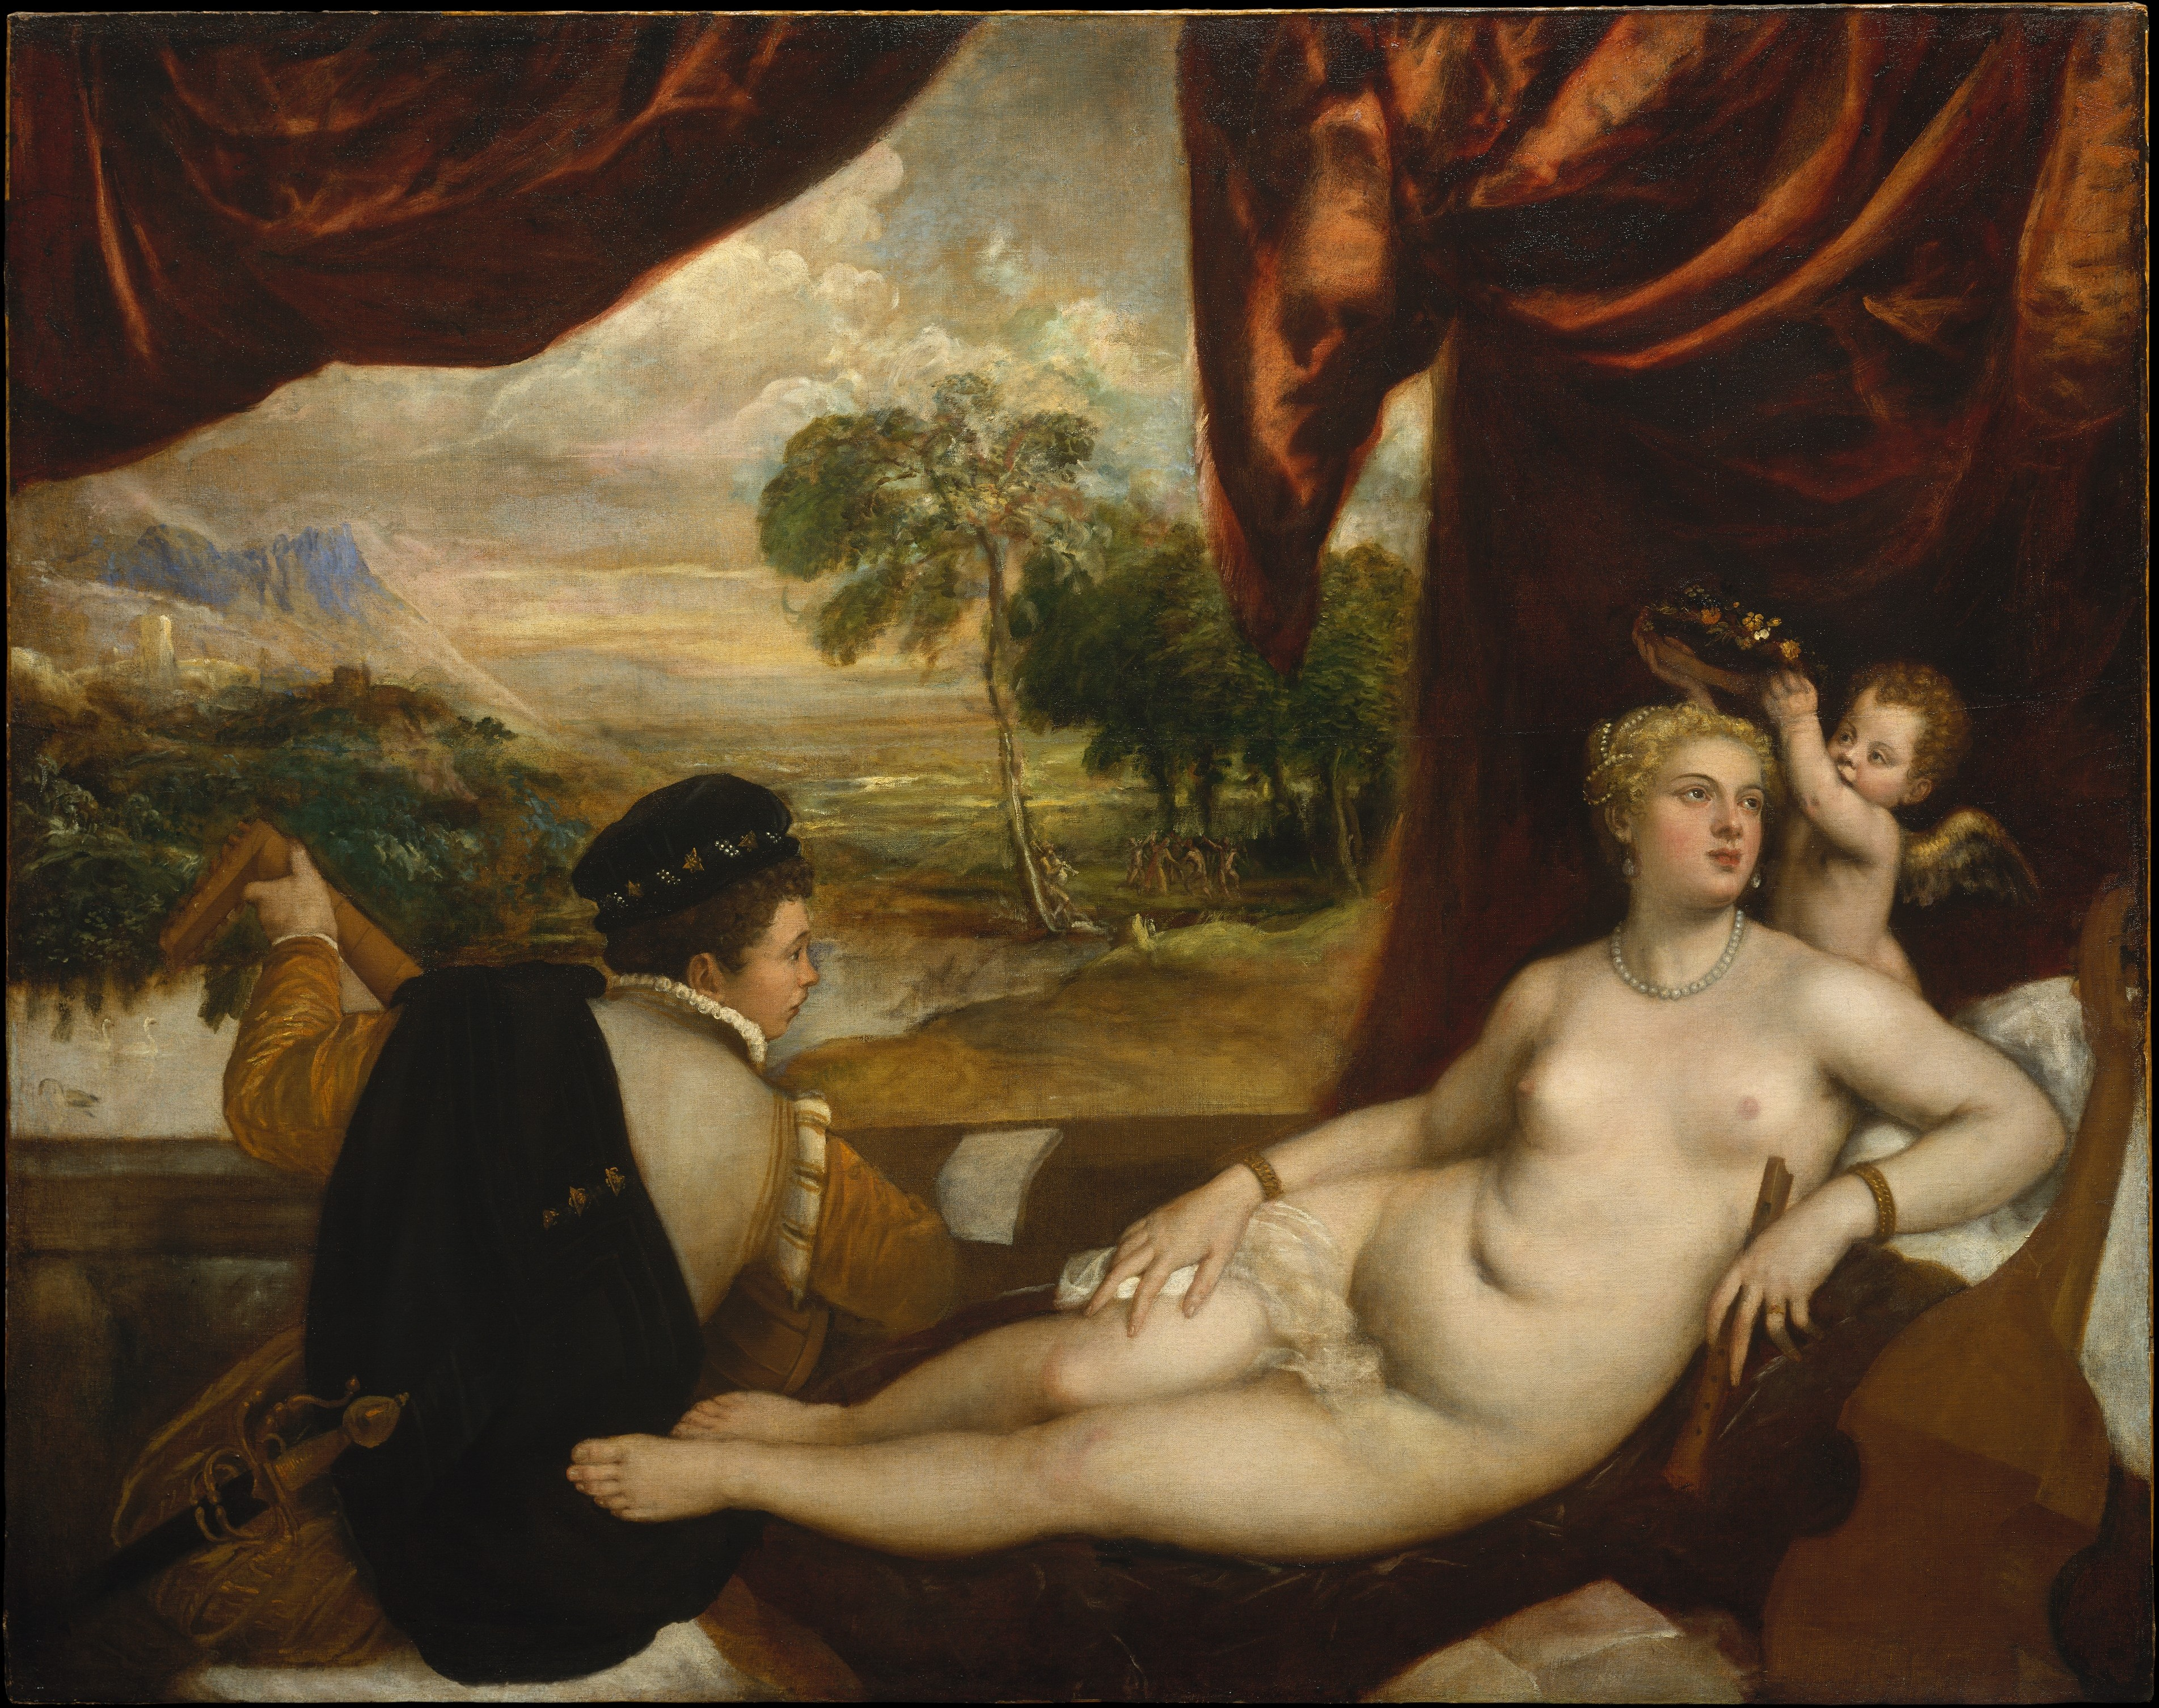 Venus and the lute player. Nude art in the Renaissance.